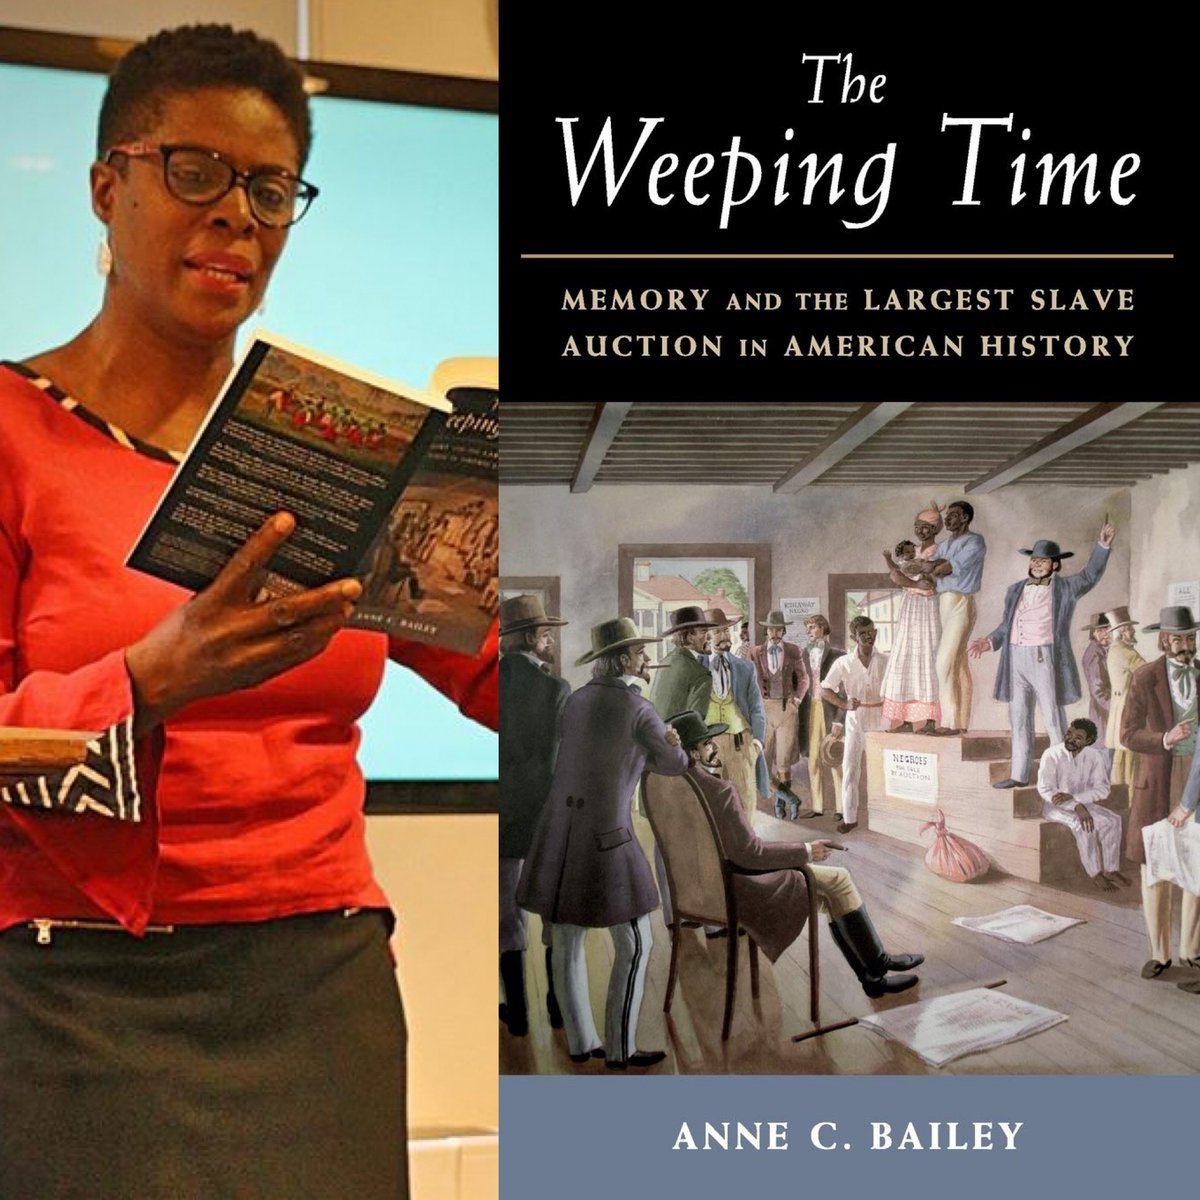 "#BOOK81 Anne C. Bailey's The Weeping Time: ""Whether it was Suriname or Jamaica, Antigua or Brazil, black-eyed peas and rice in various mutations was sumptuously prepared with African herbal seasonings and always salt pork or beef."" #slaveryarchive #WomenAlsoKnowHistorypic.twitter.com/7W7jy42Dil"